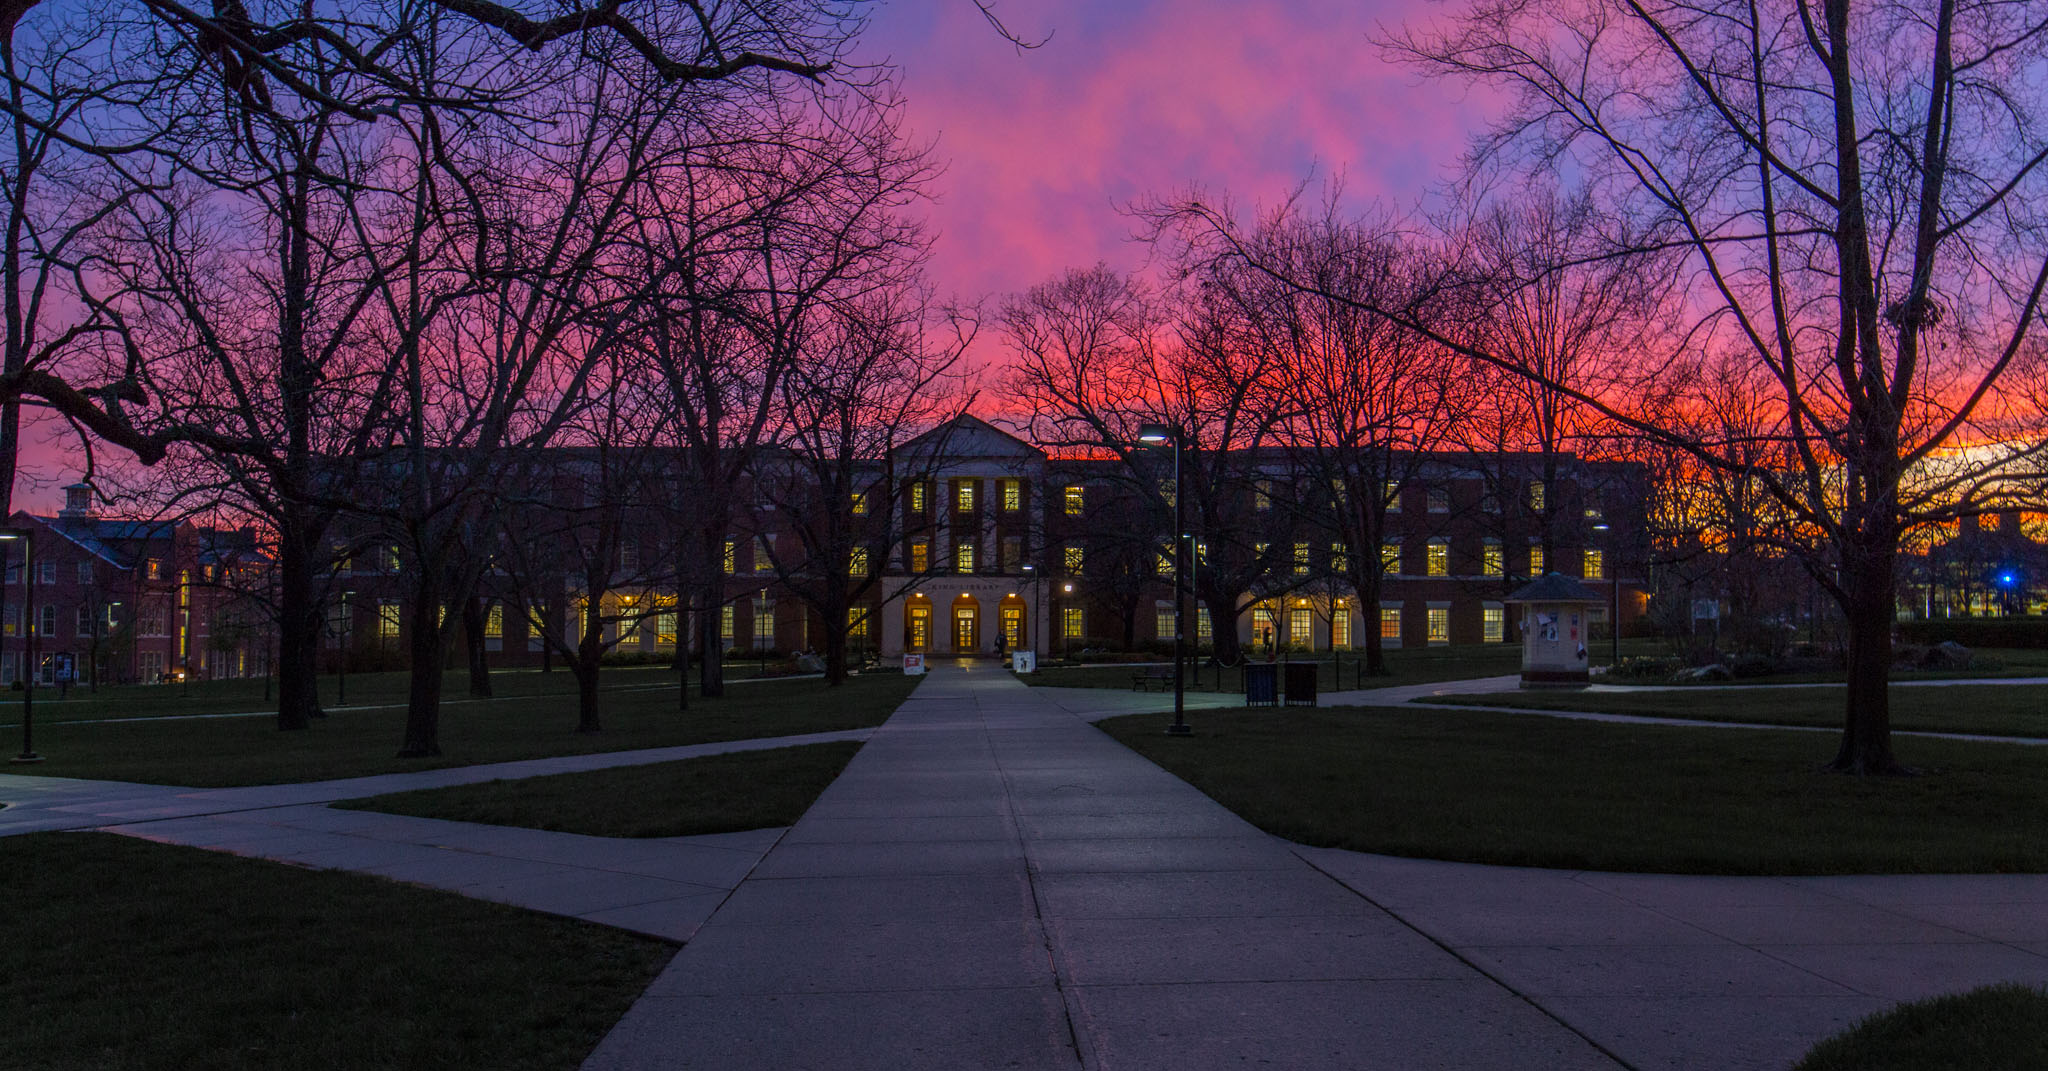 King Library at sunset